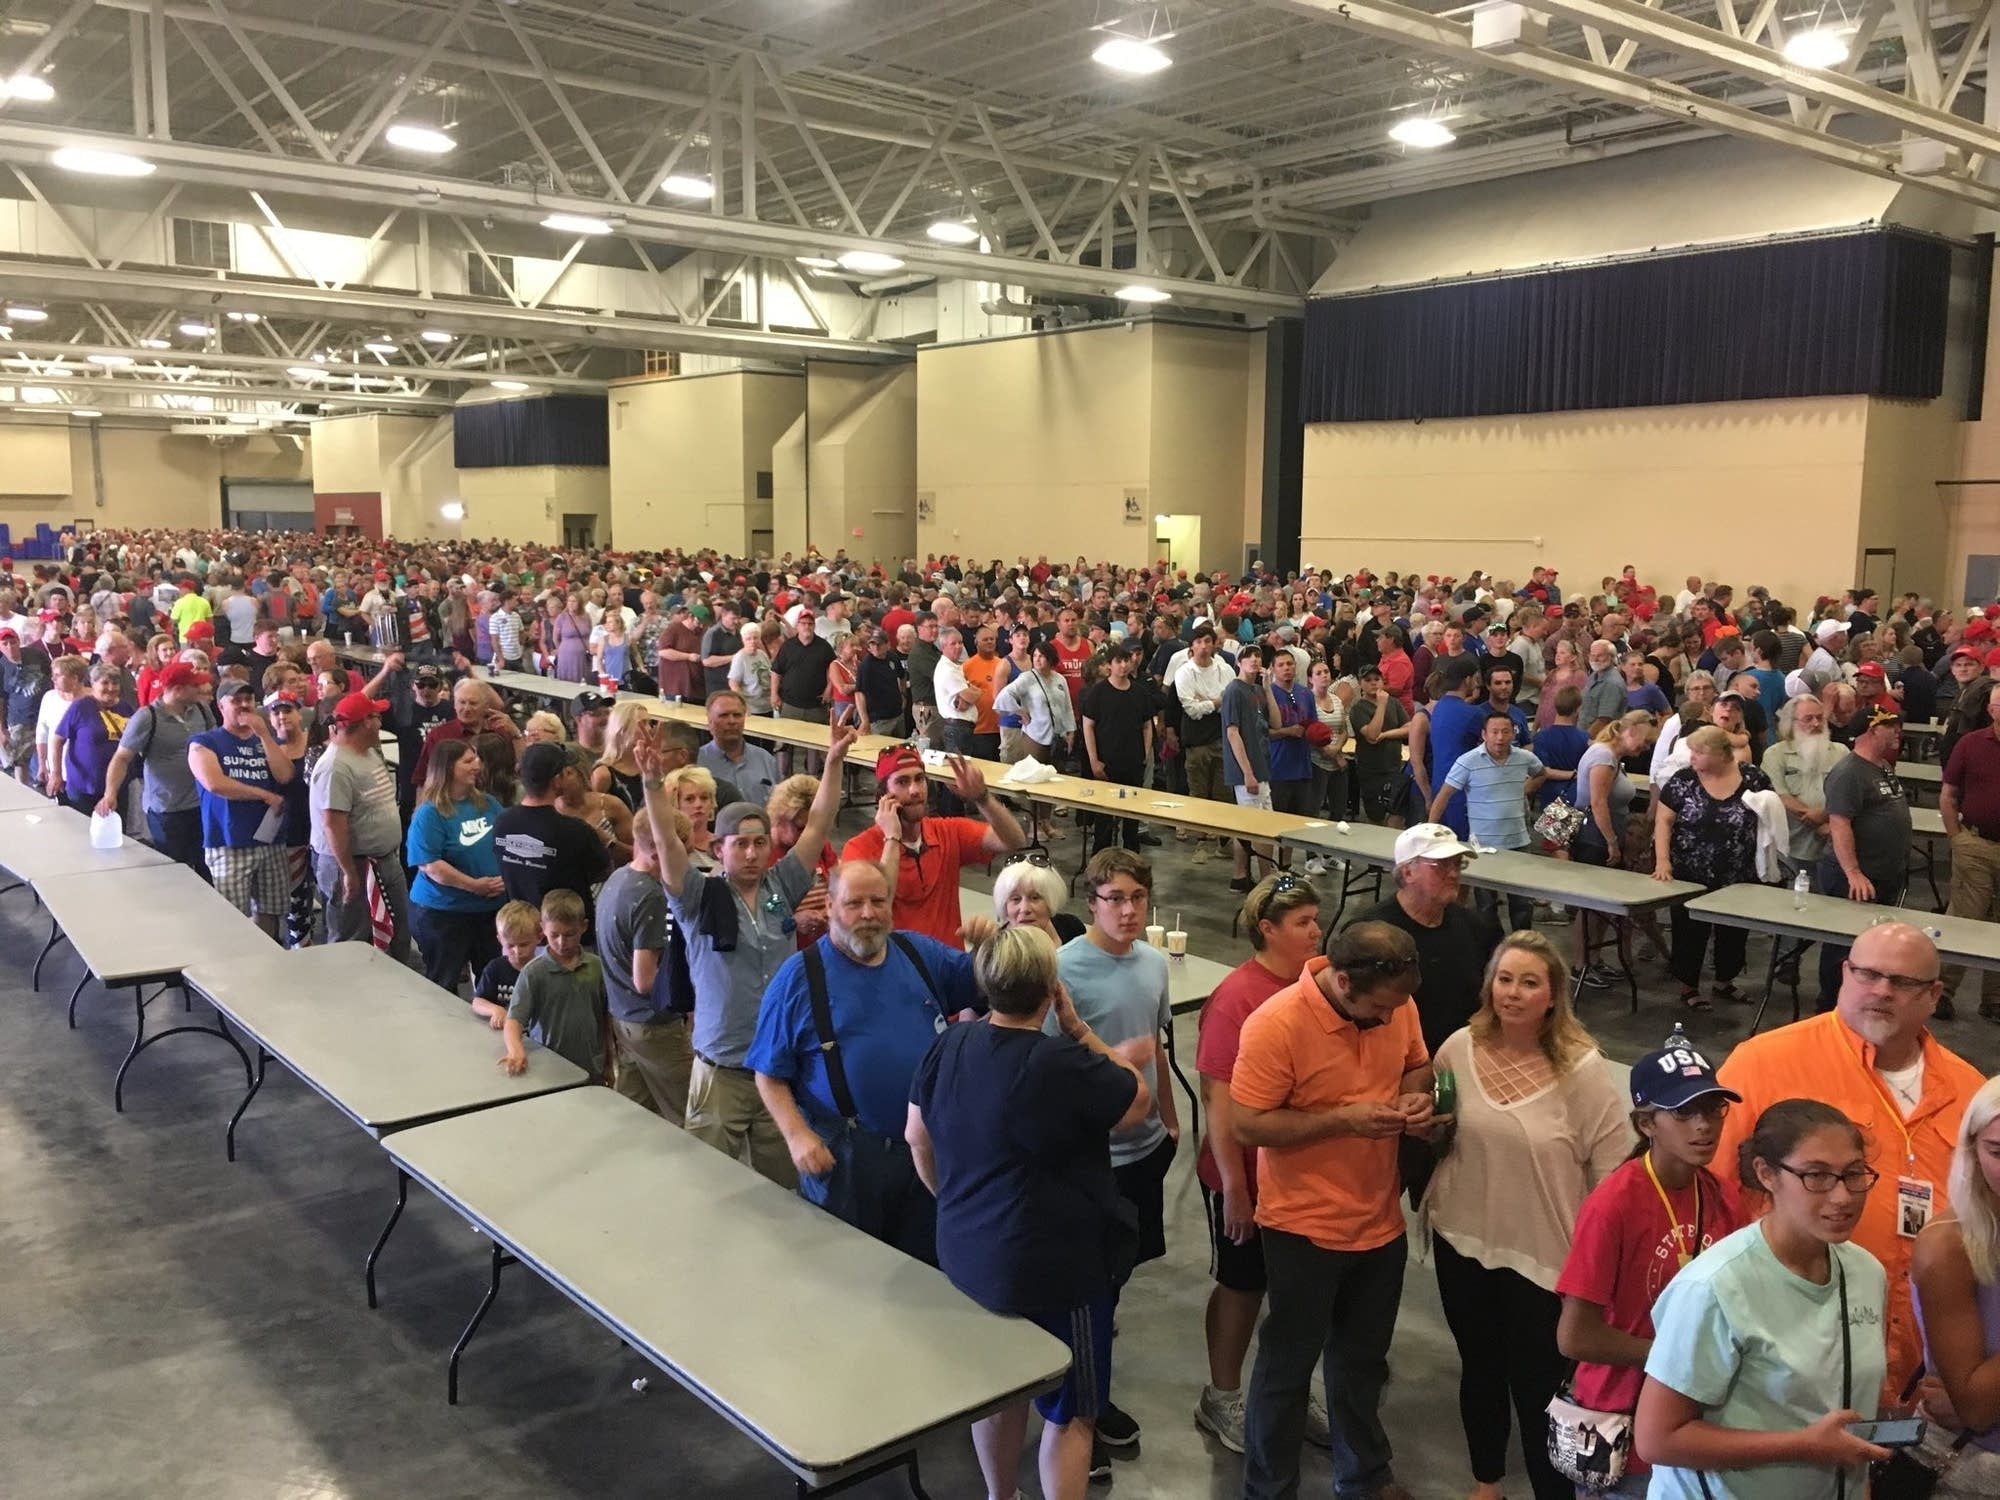 People stand in line trying to get into the President Trump rally.